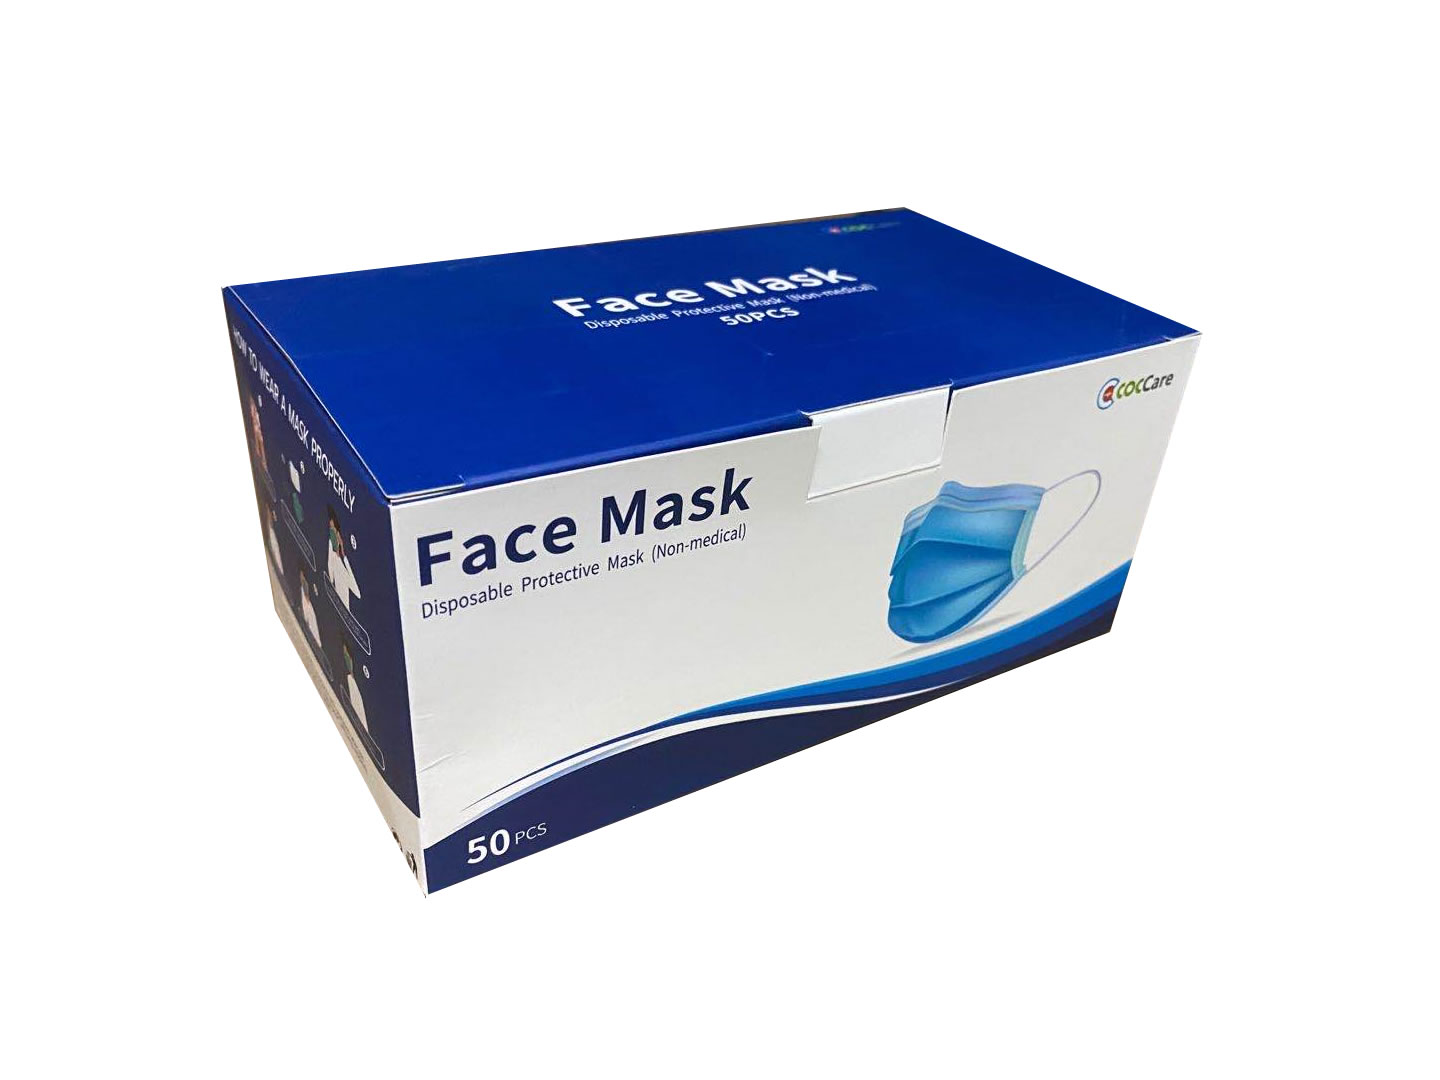 Color Box for 3 Ply Disposable Face Mask